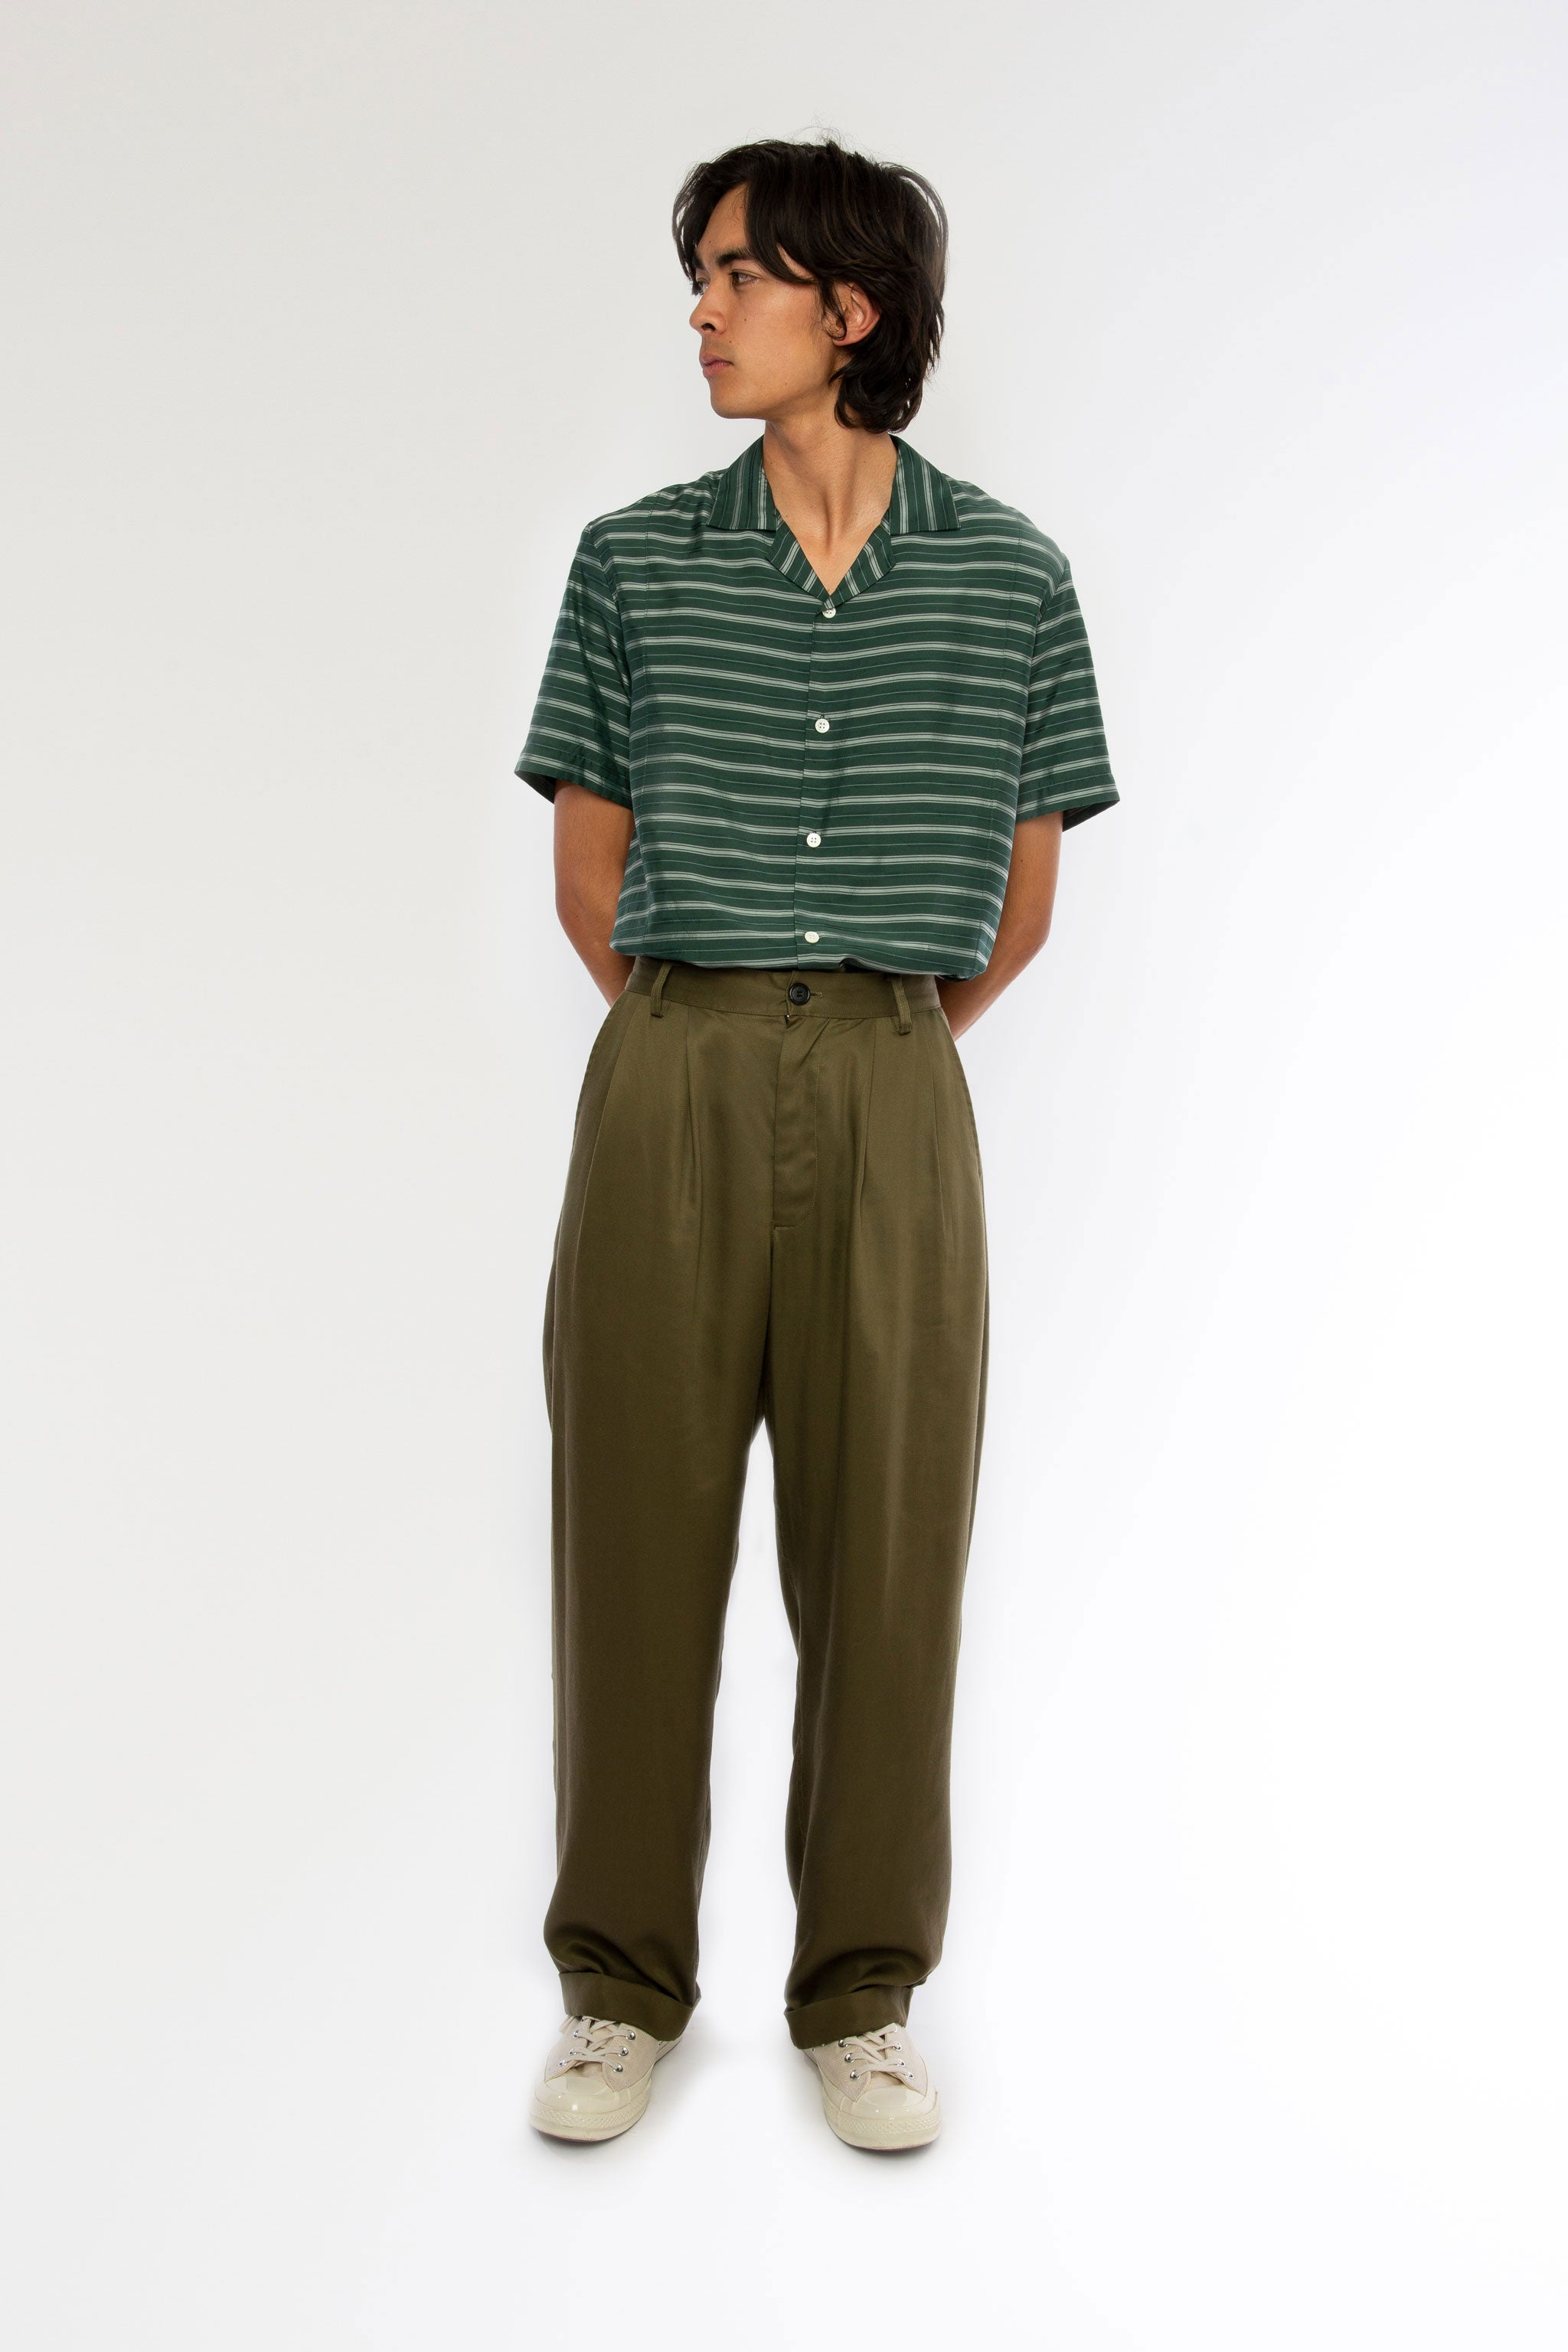 Goodfight SS19 Blazing Sundays Trouser Olive